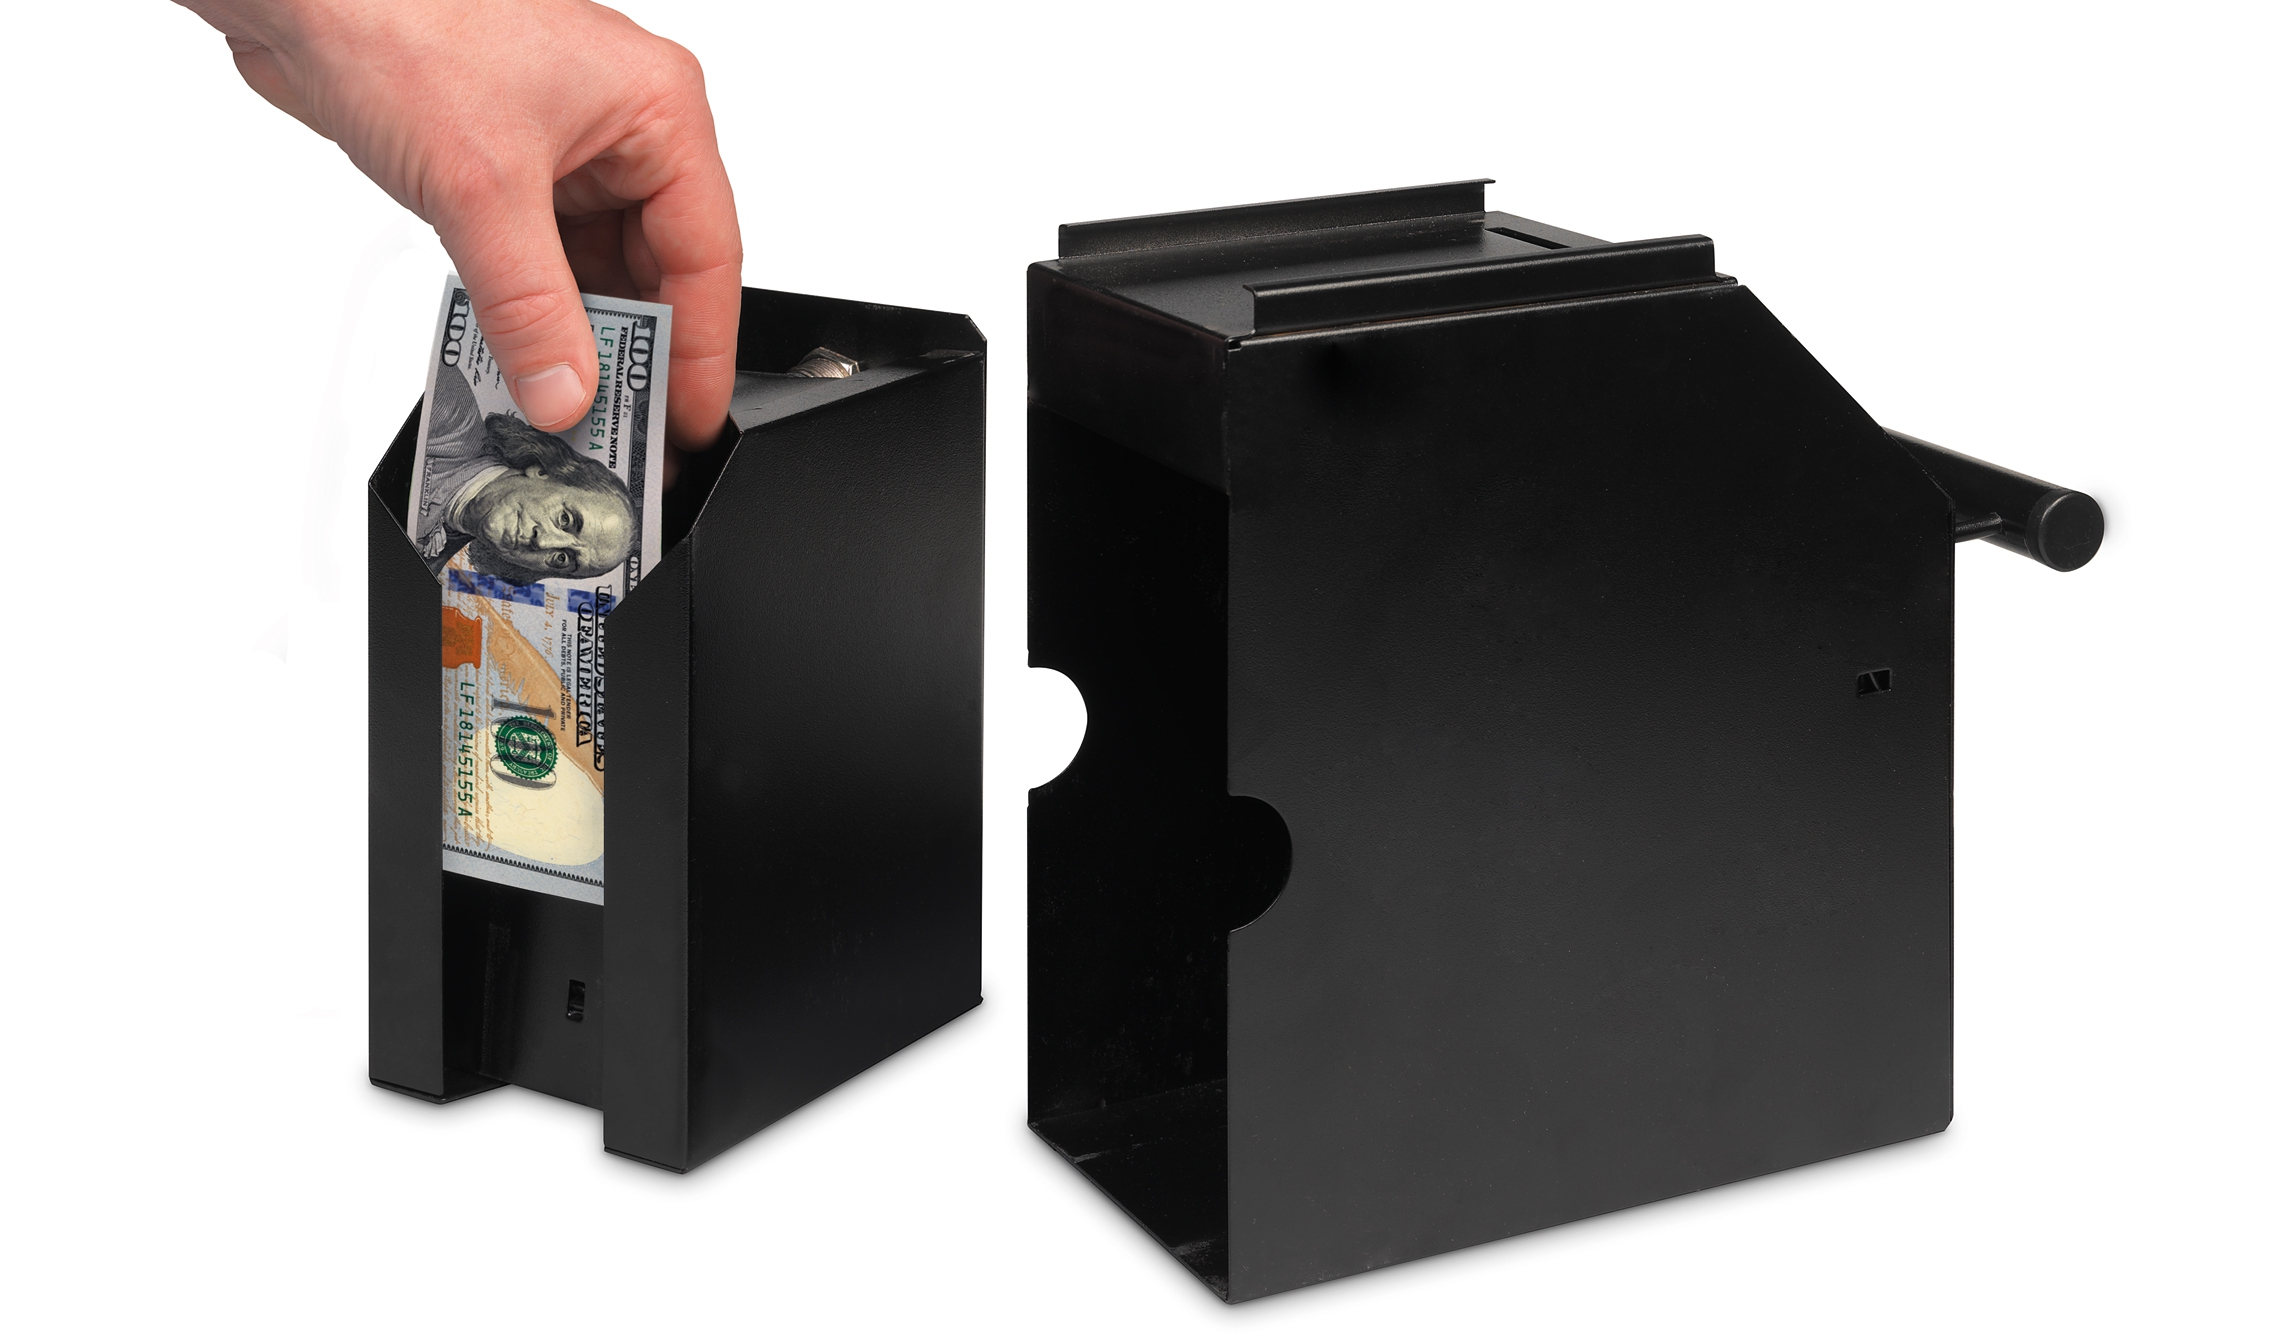 safescan-4100b-banknote-safe